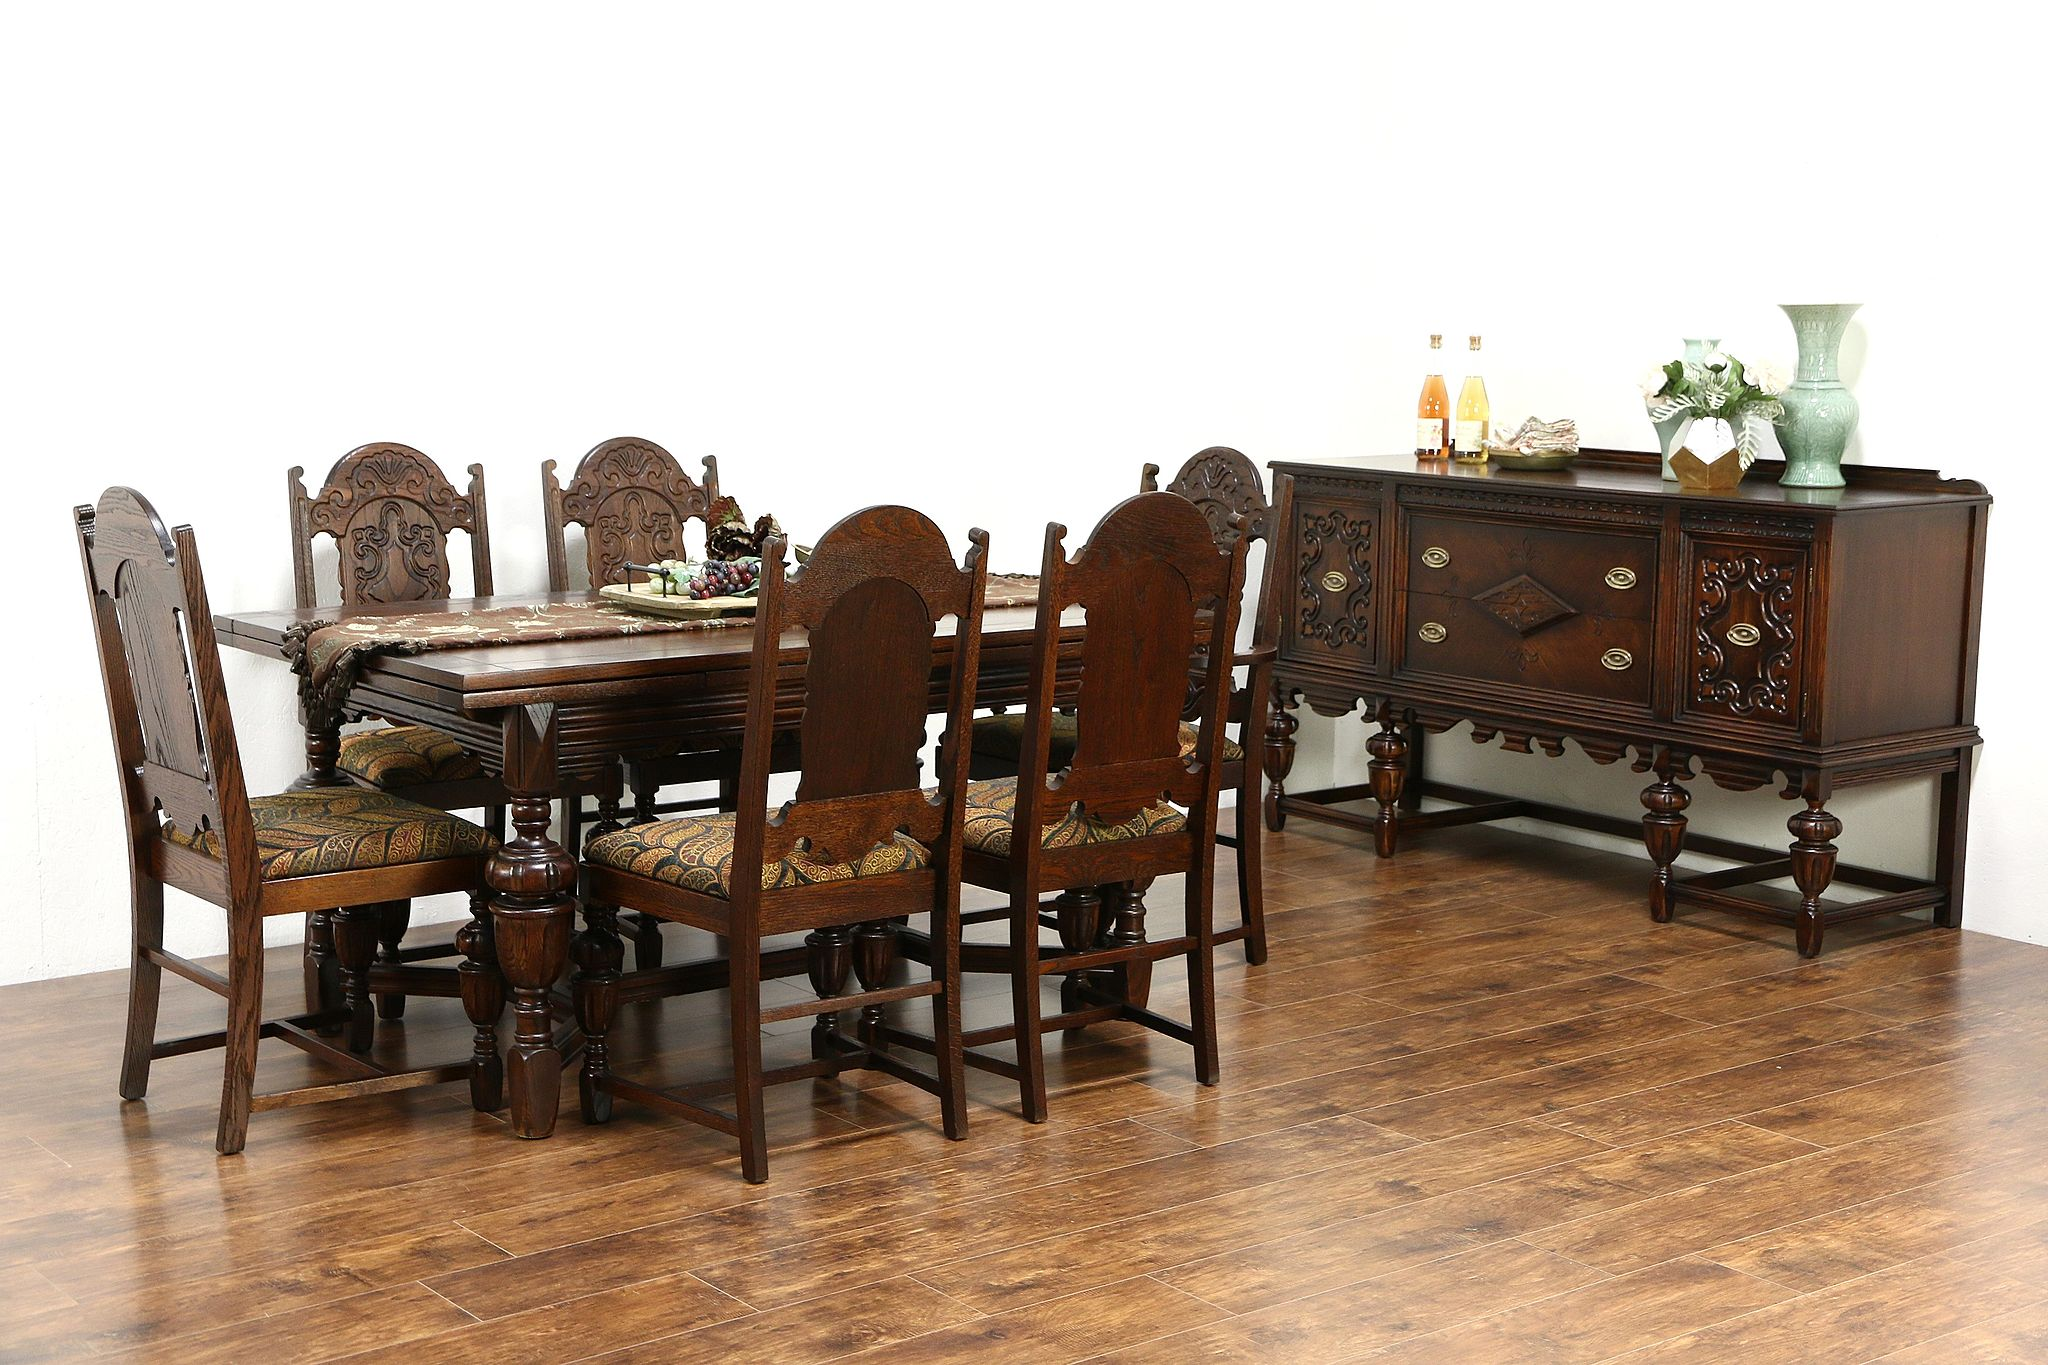 6 chair dining set cream puff sold english tudor 1920 antique oak table chairs new upholstery harp gallery